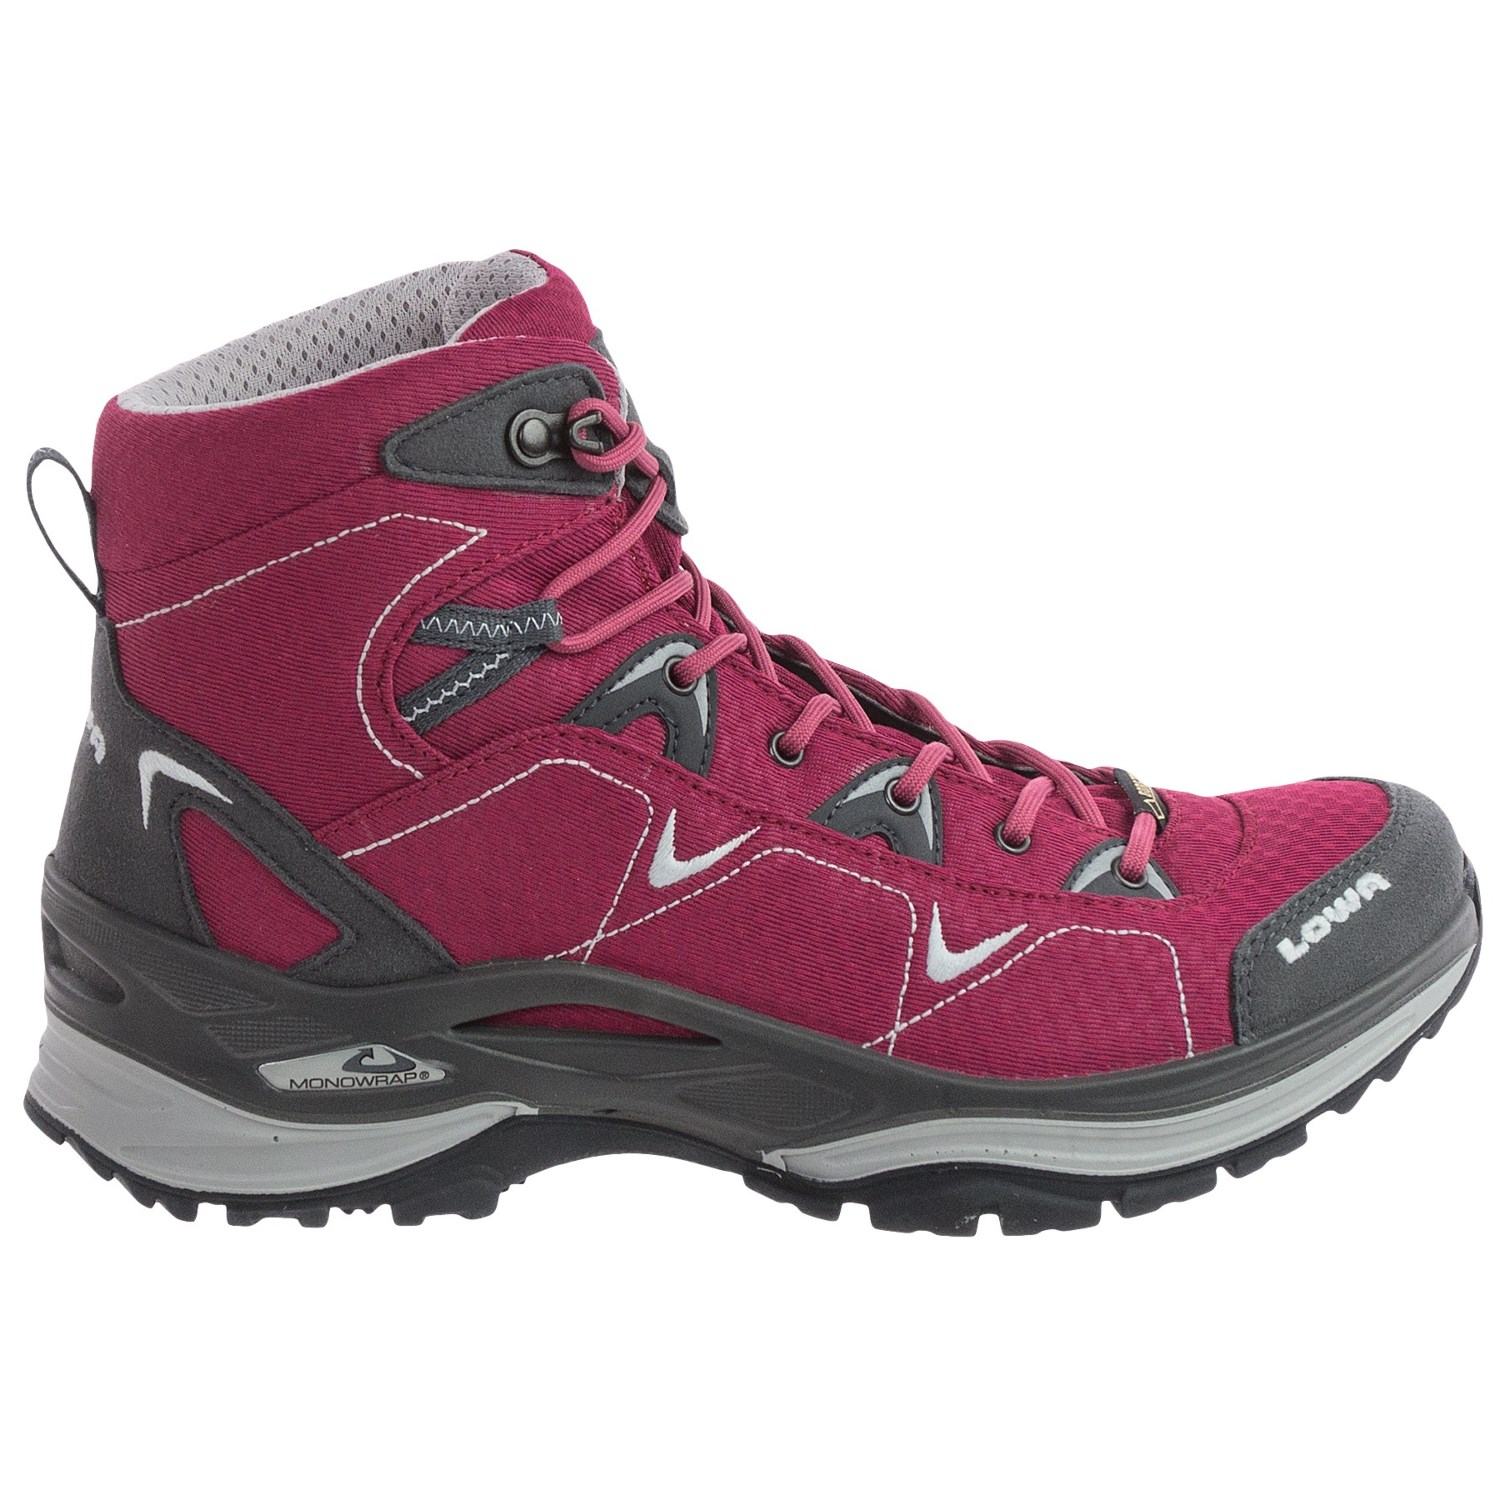 Creative Lowa Tempest QC Hiking Boots (For Women) - Save 52%